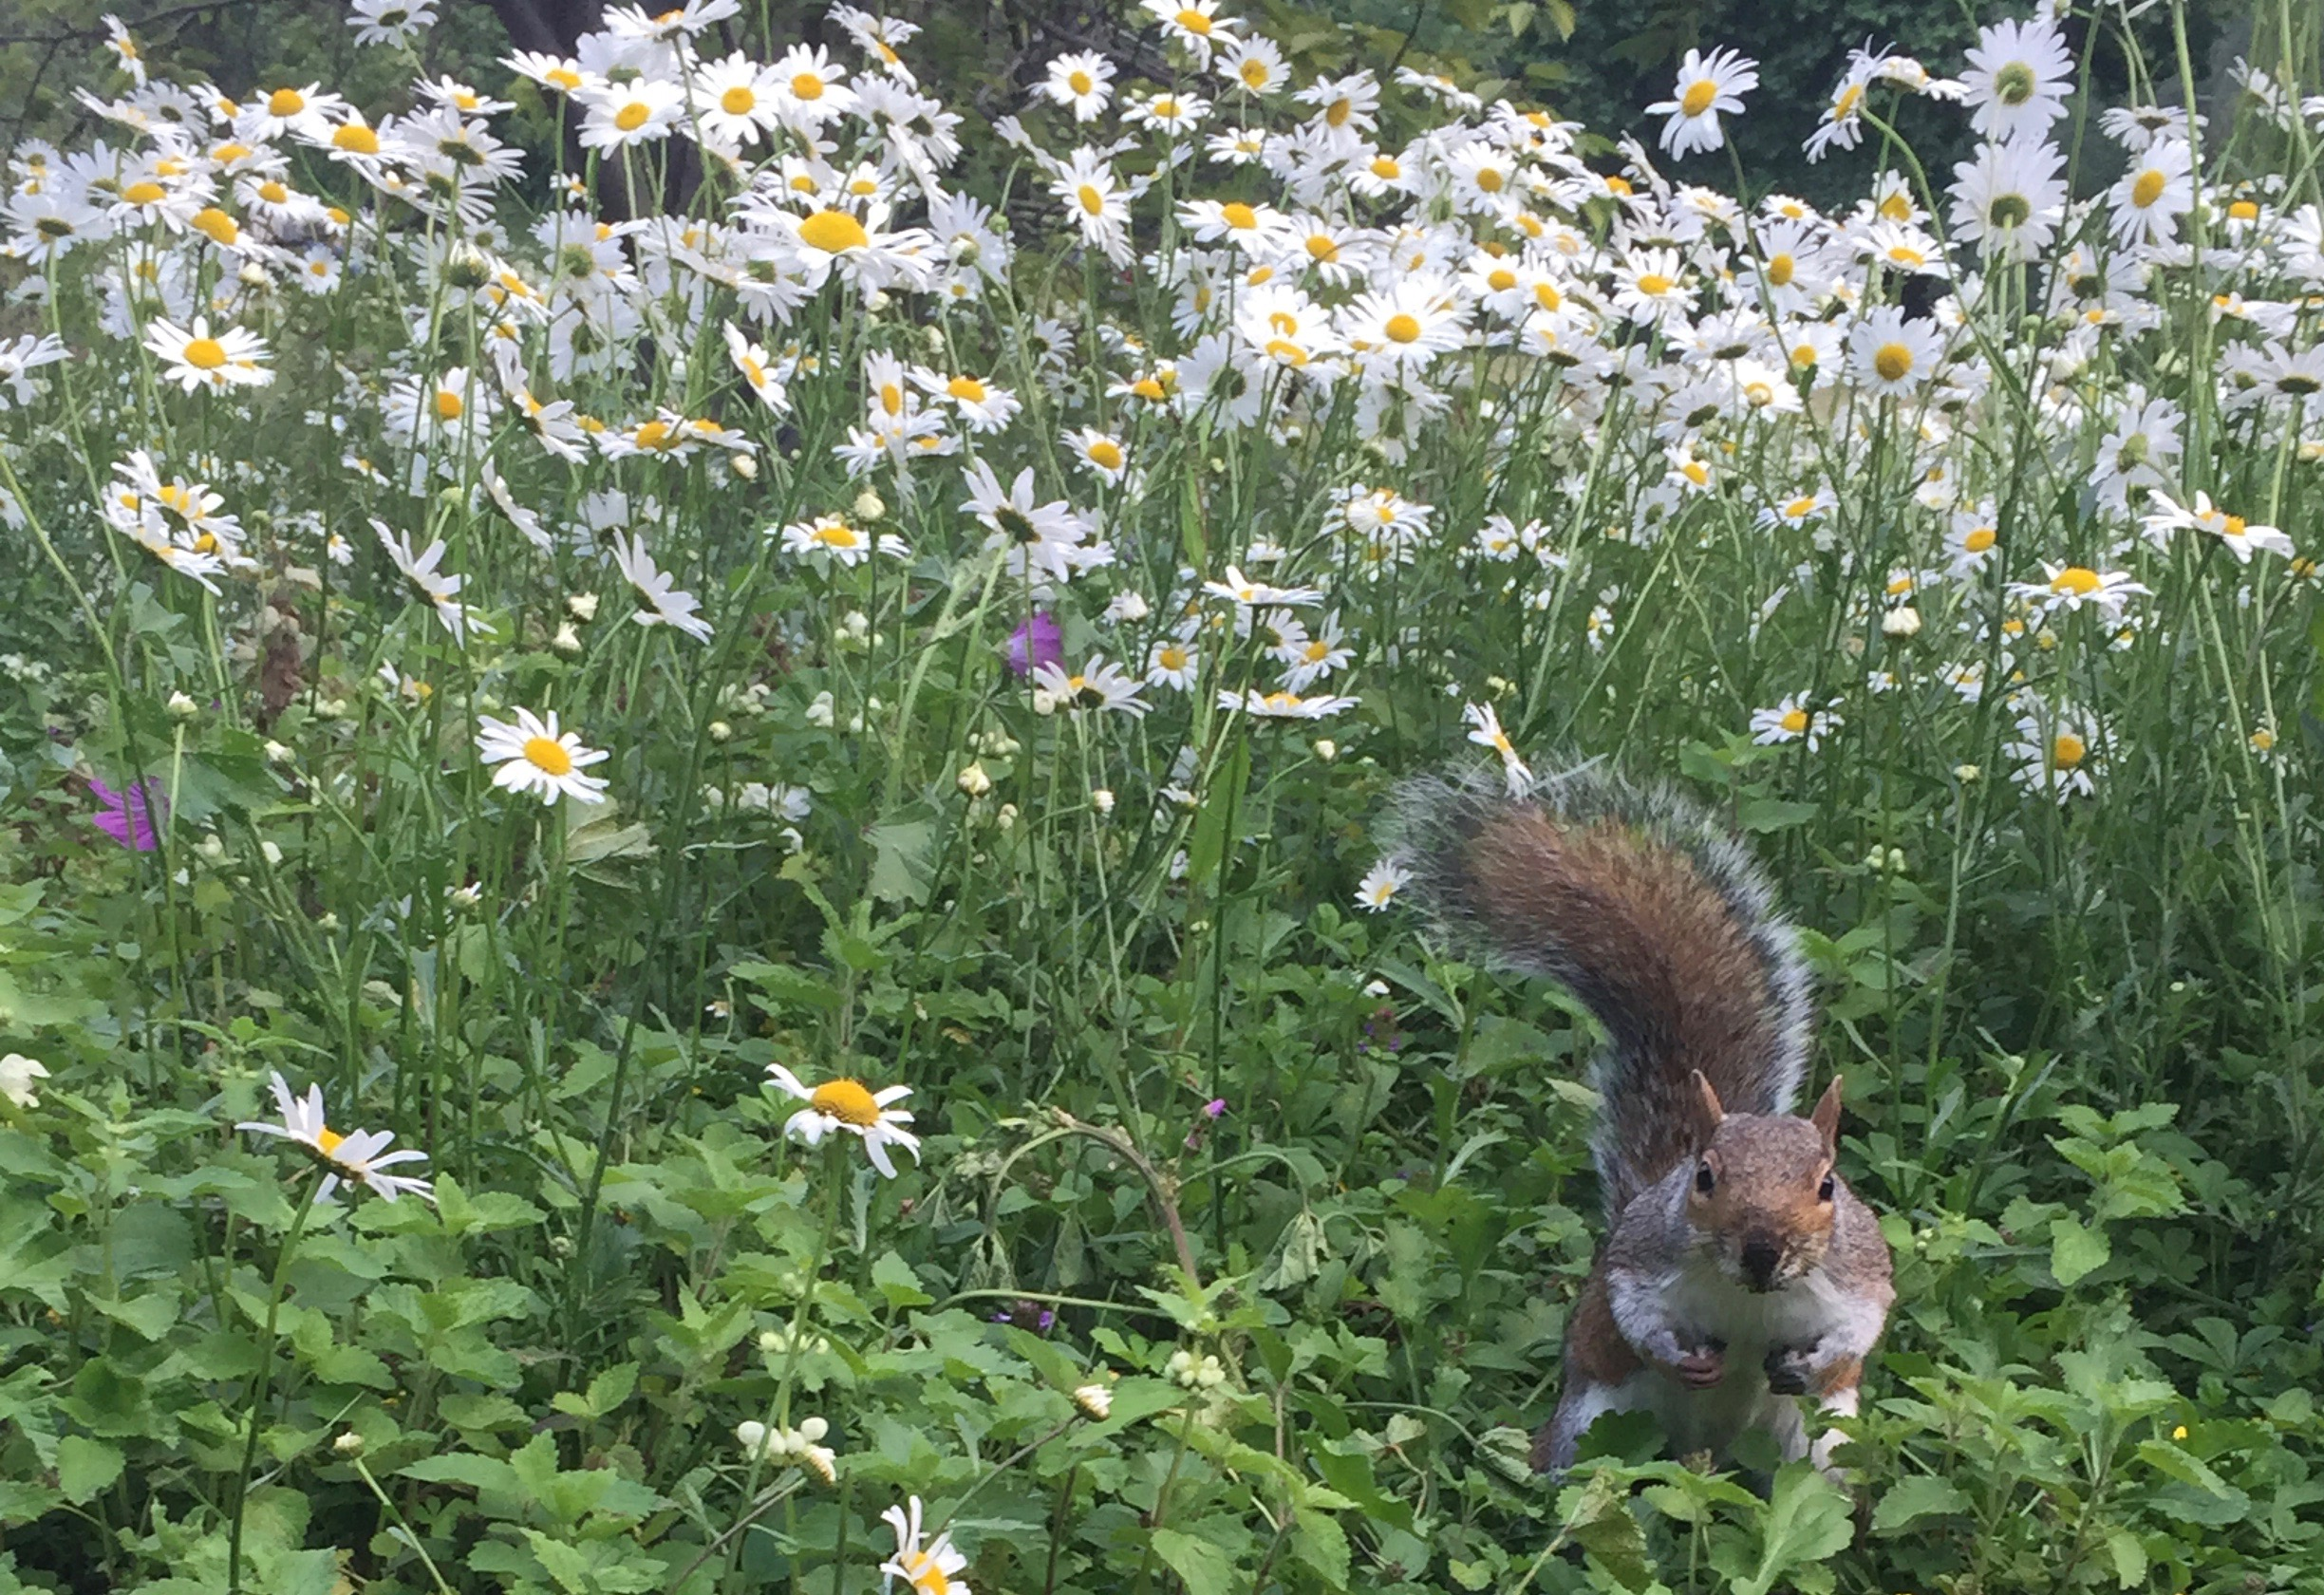 A squirrel in a rather confrontational pose, facing the camera with its tail over its head, standing in a field of daisies